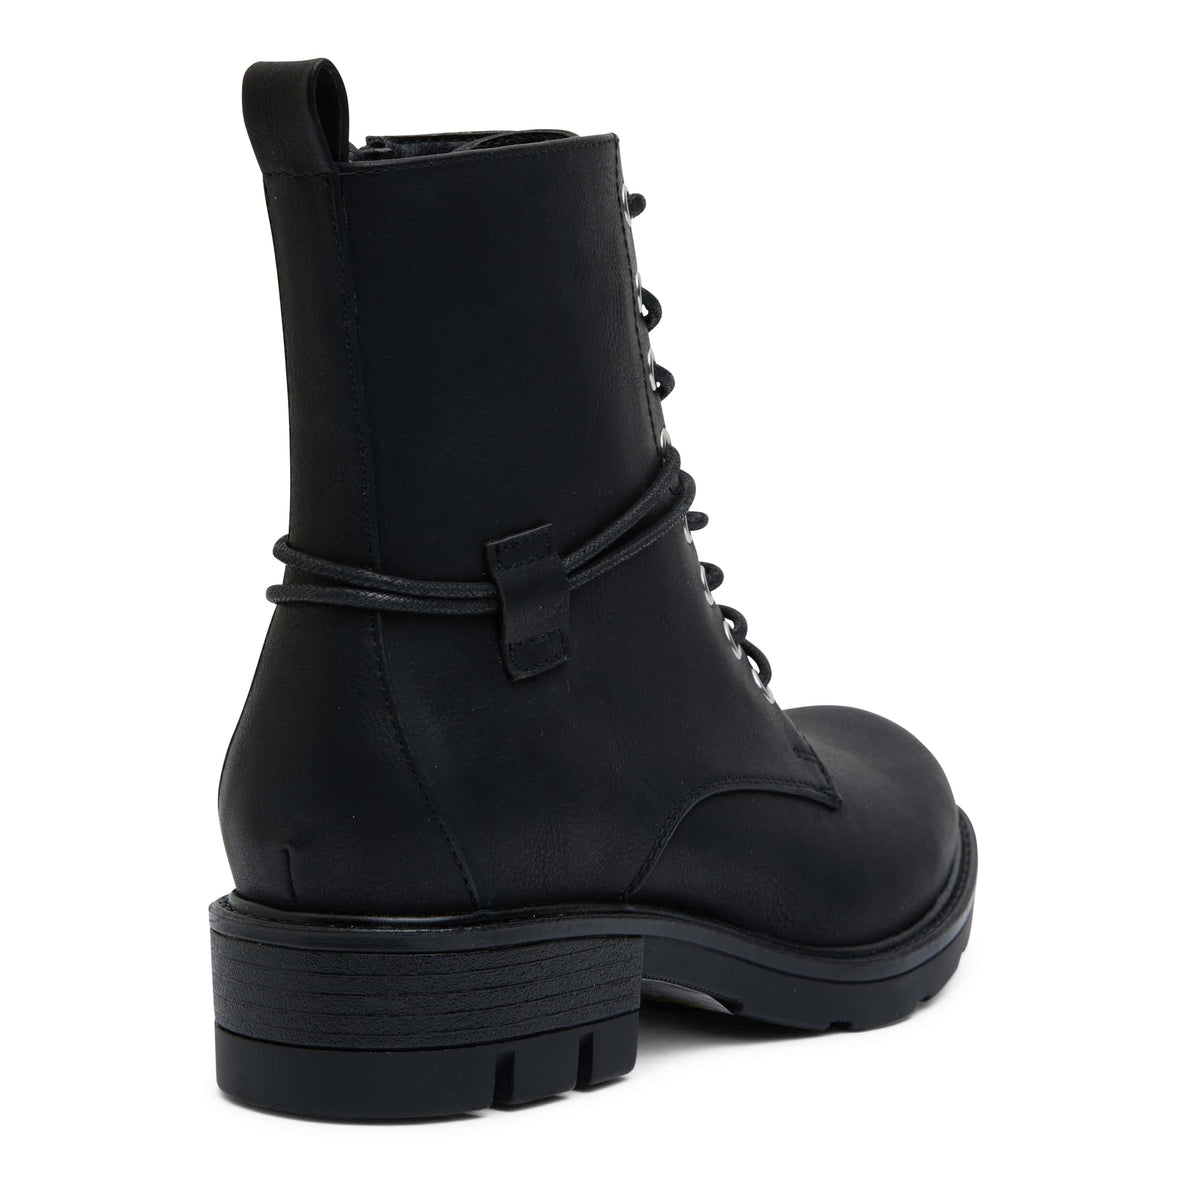 Nara Boot in Black Smooth